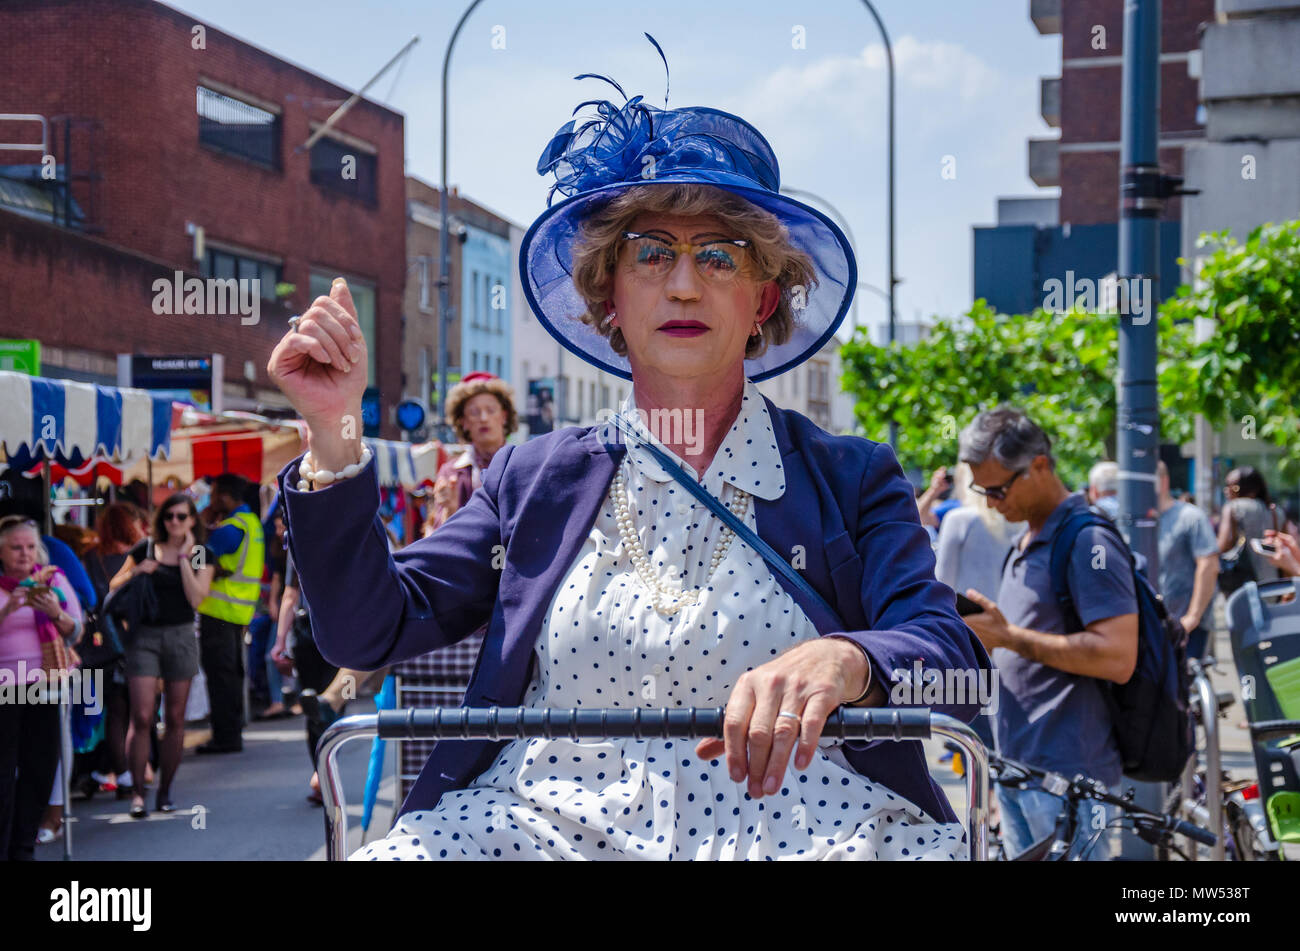 A man dressed up as an old woman riding a shopping trolley is actually a street performer entertaining crowds at a Hammersmith & Fulham Spring Market Stock Photo